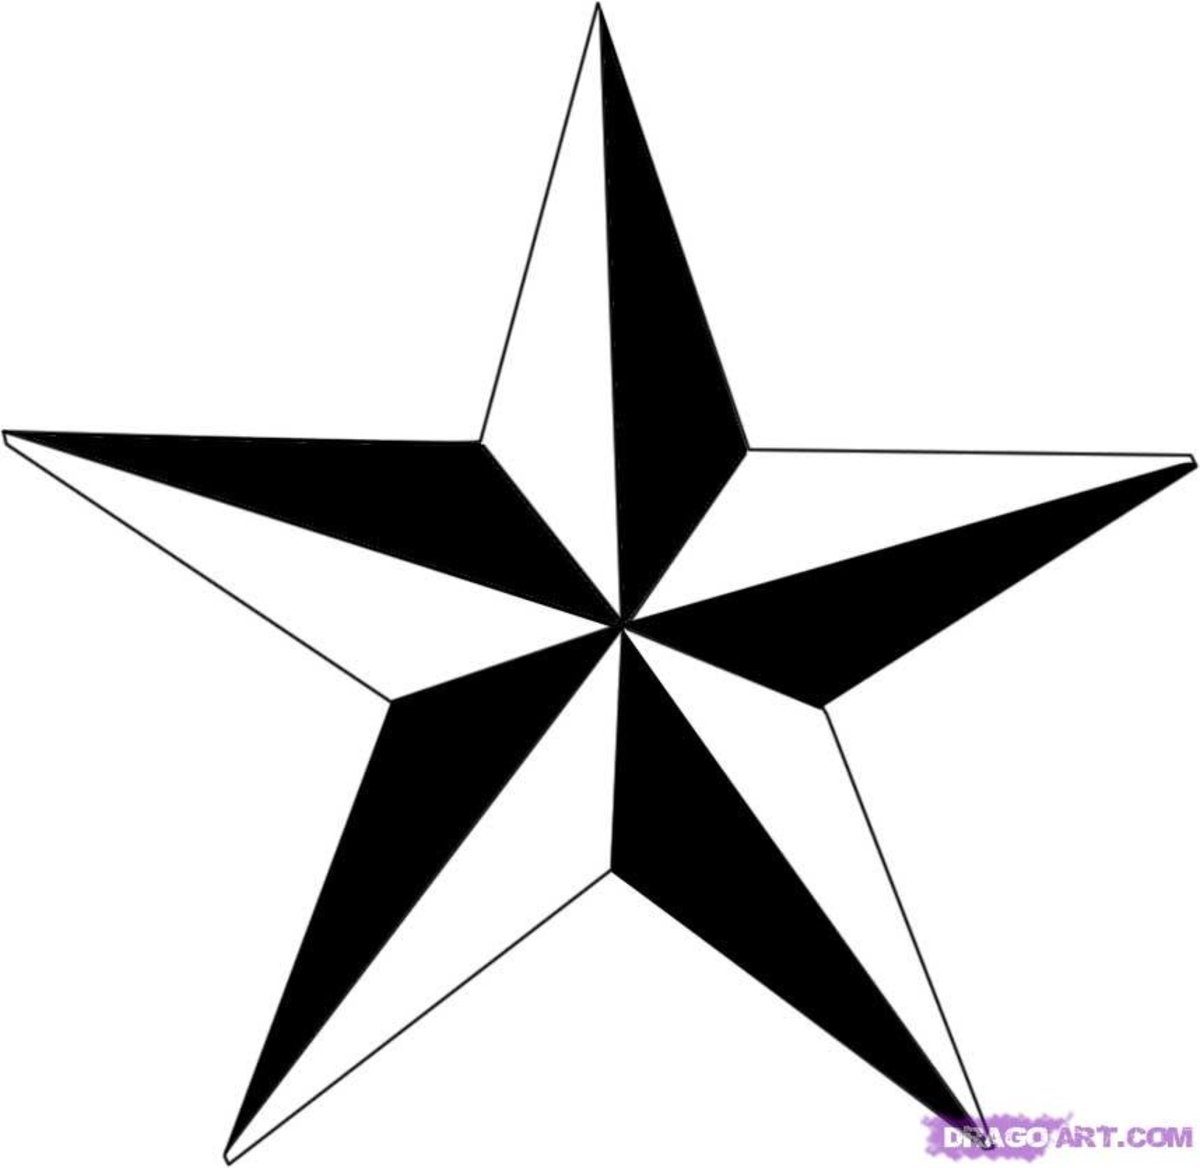 How To Draw Stars Perfectly (Without Tracing)